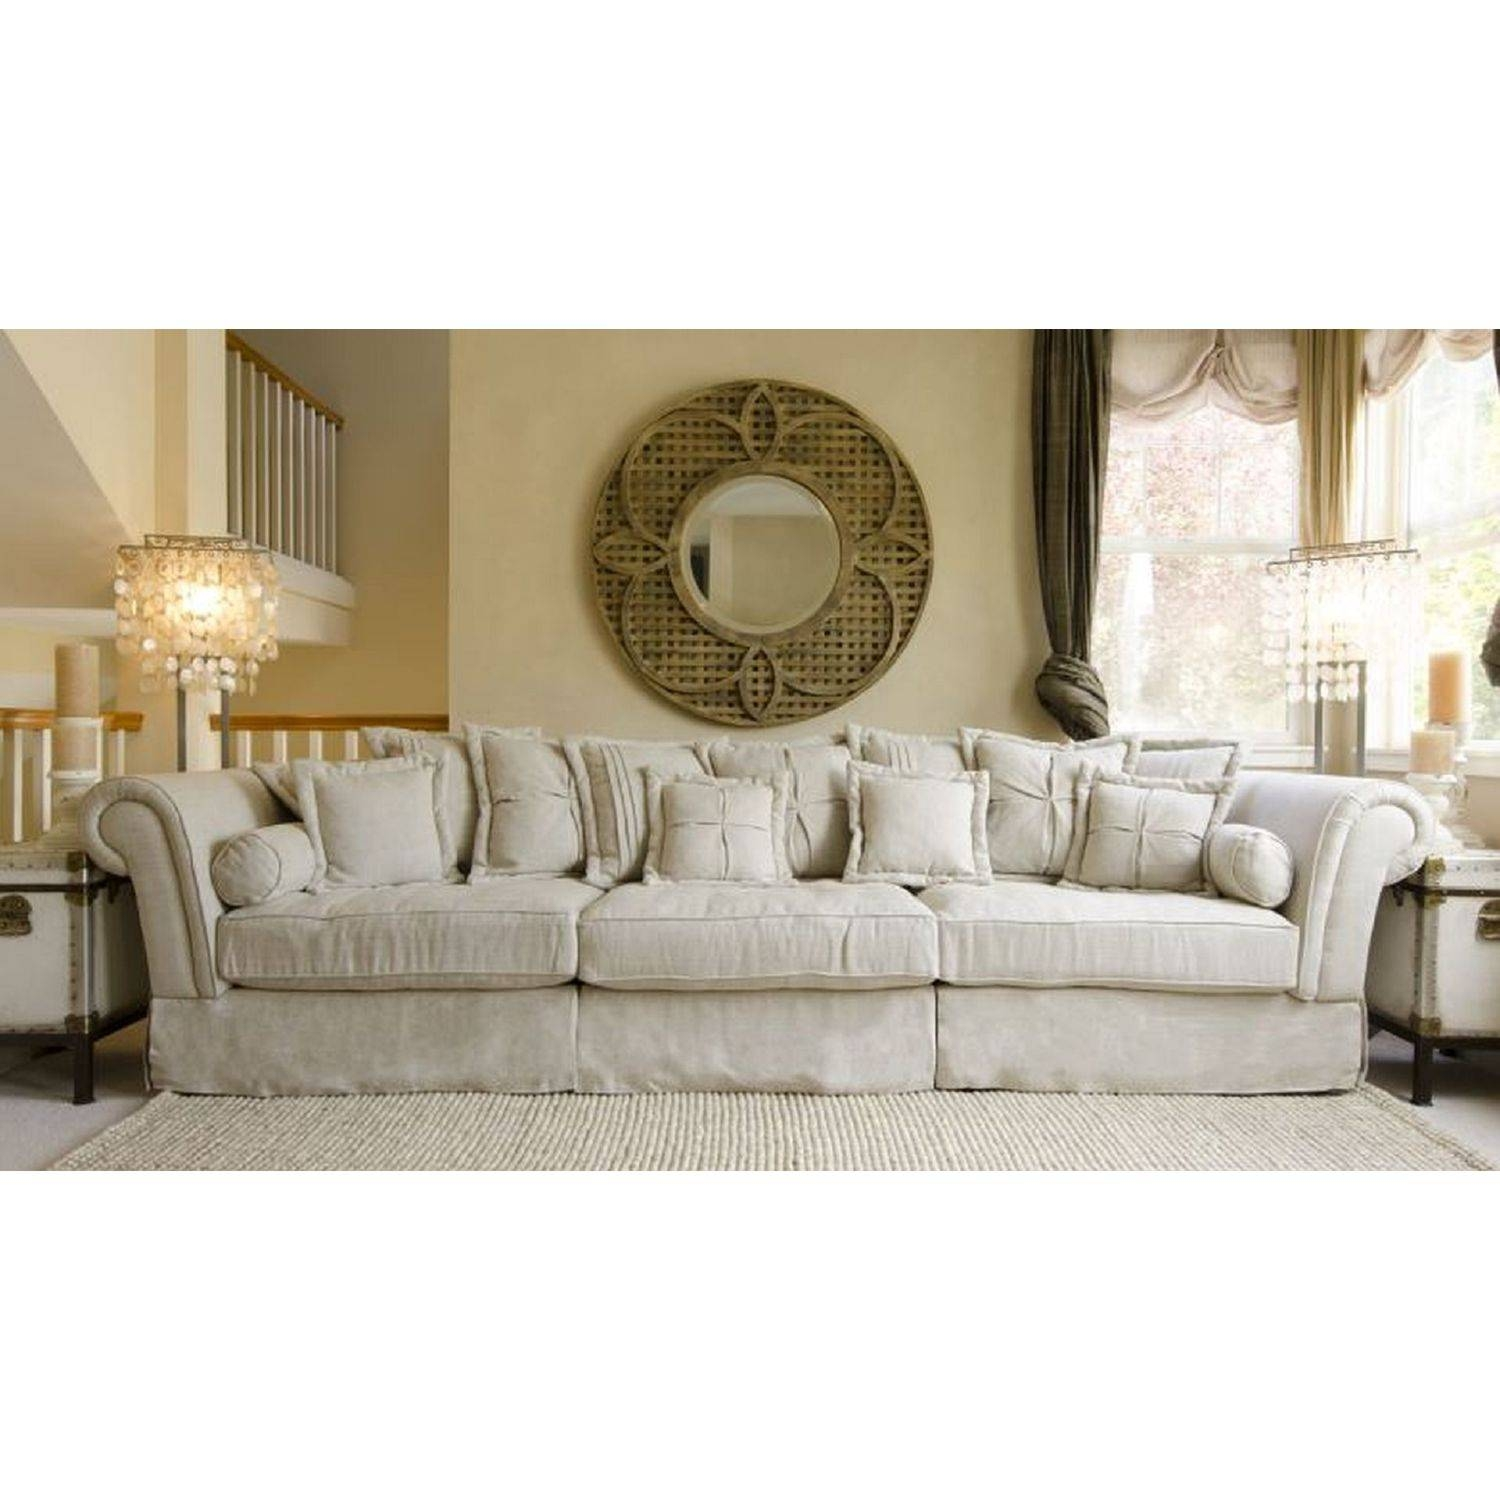 Glamorous Shabby Chic Sectional Sofa 67 For Cheap Sectional Sofas With Shabby Chic Sectional Couches (View 3 of 15)